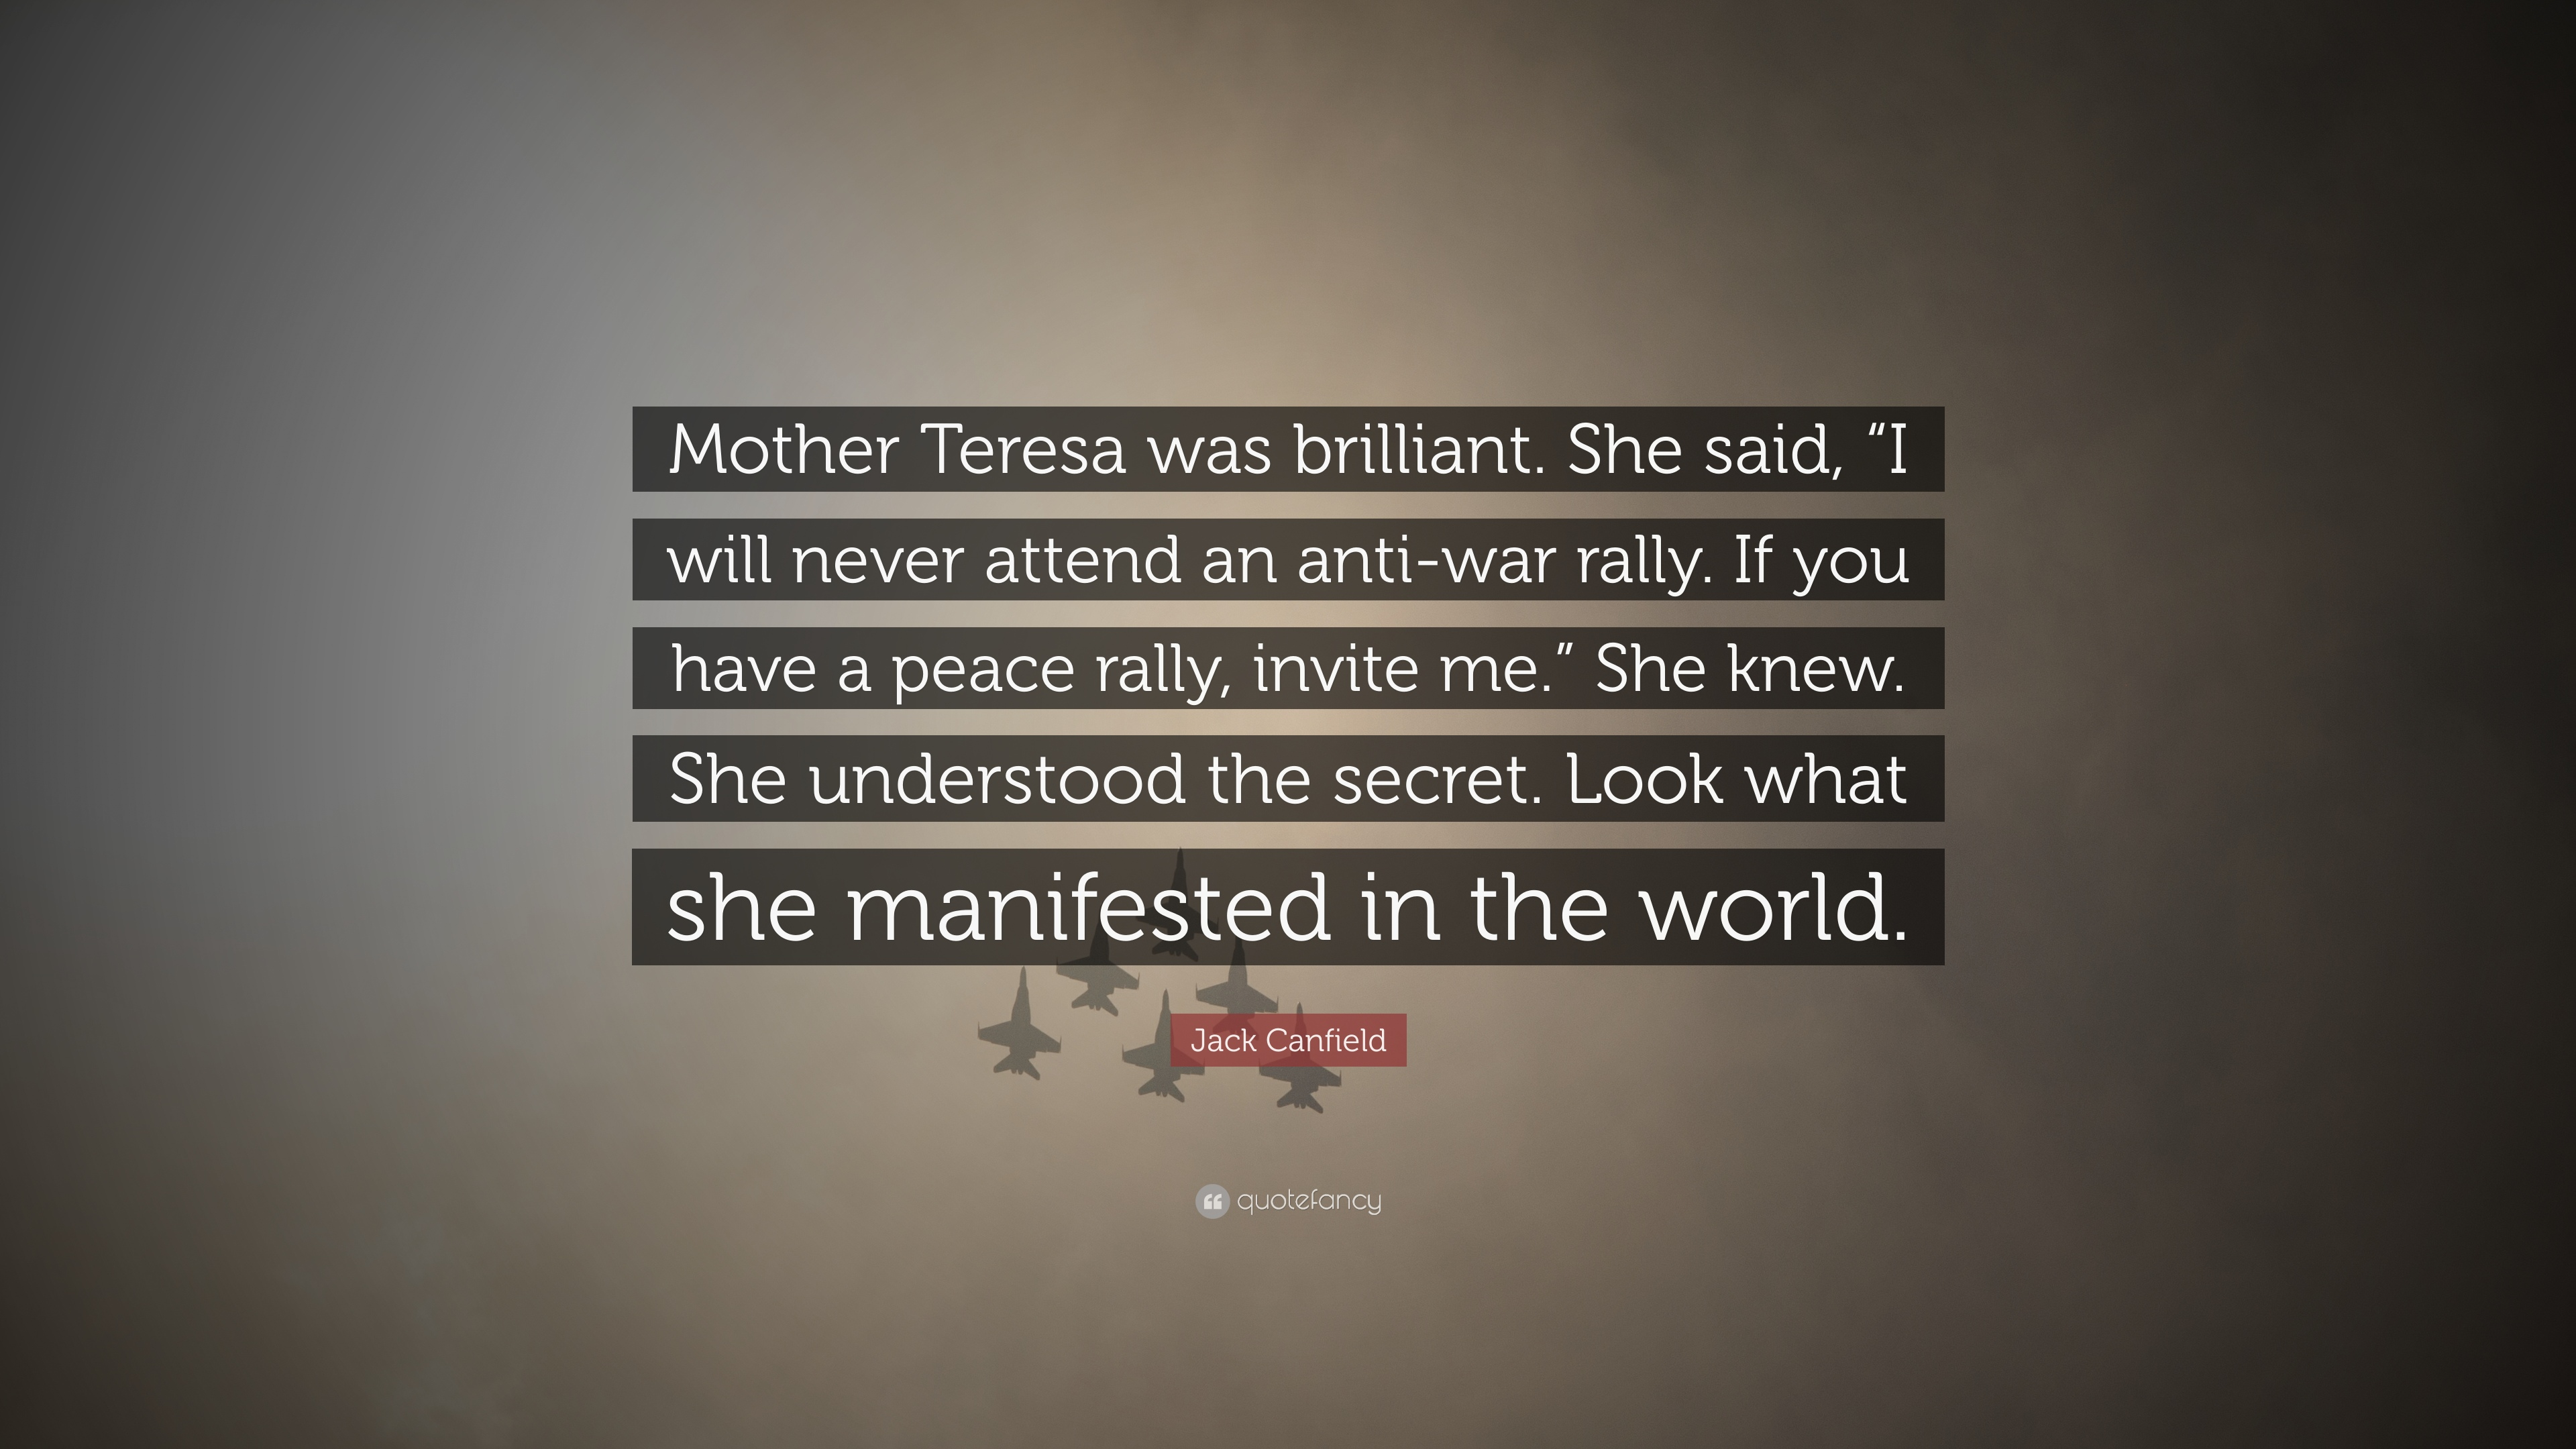 a look at the life and mission of mother teresa Enjoy the best mother teresa quotes at brainyquote quotations by mother teresa, albanian saint, born august 26, 1910 share with your friends.